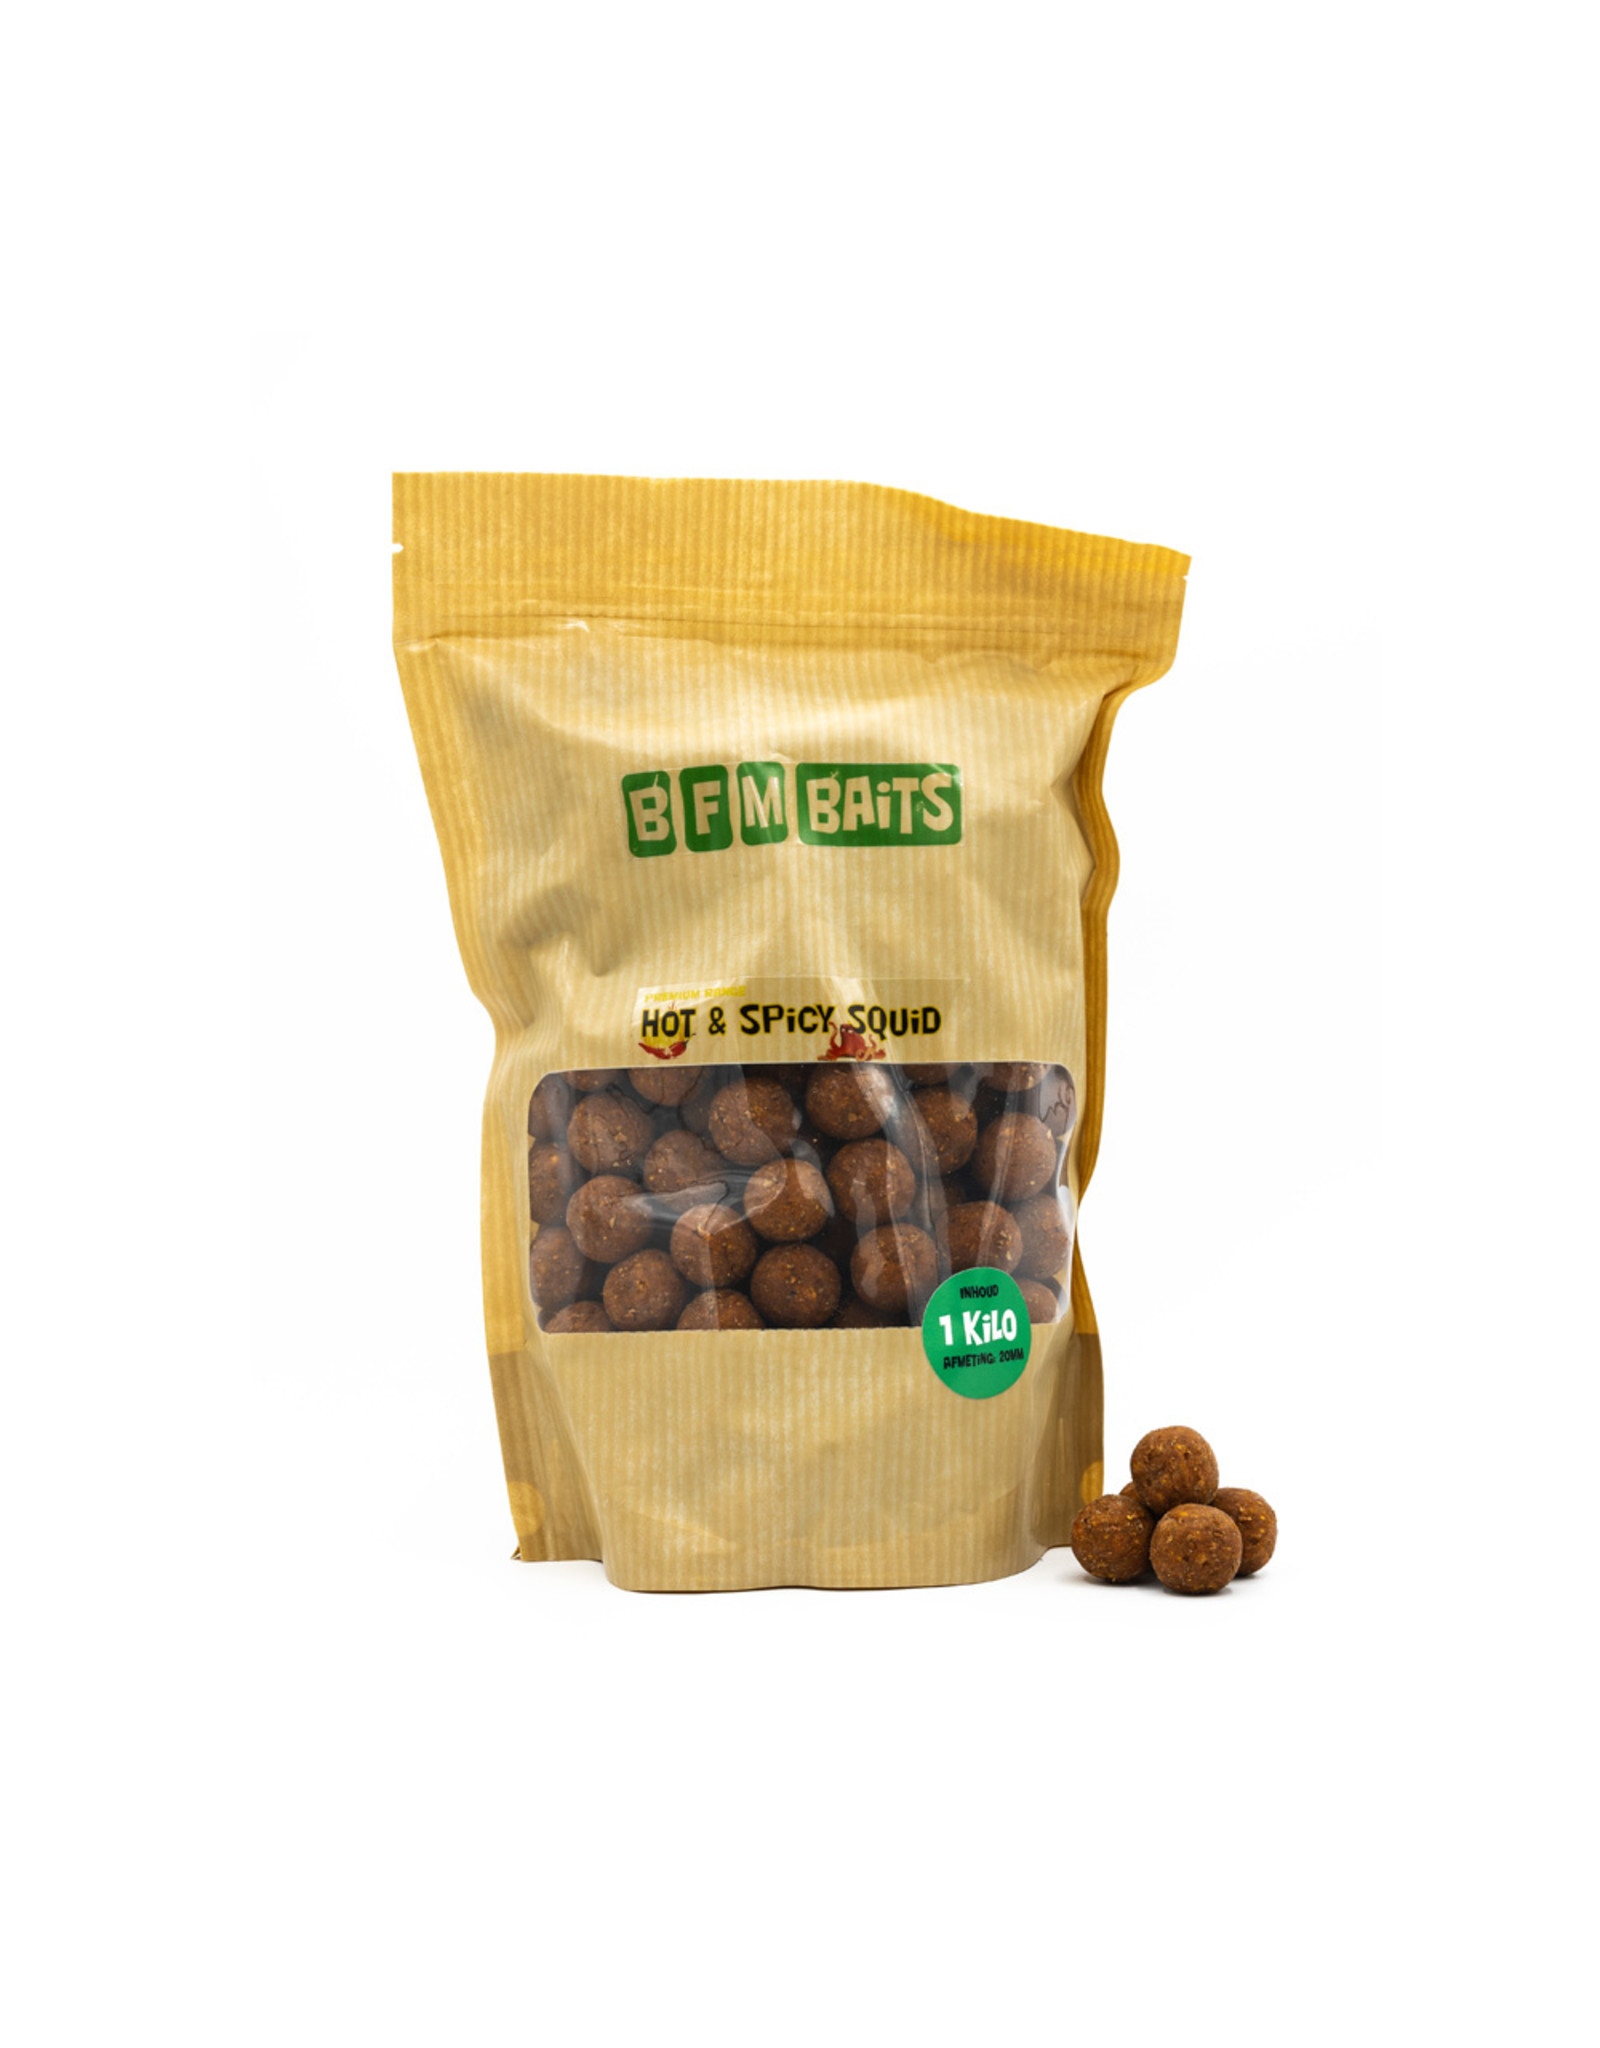 BFM Baits Hot & Spicy Squid boilies